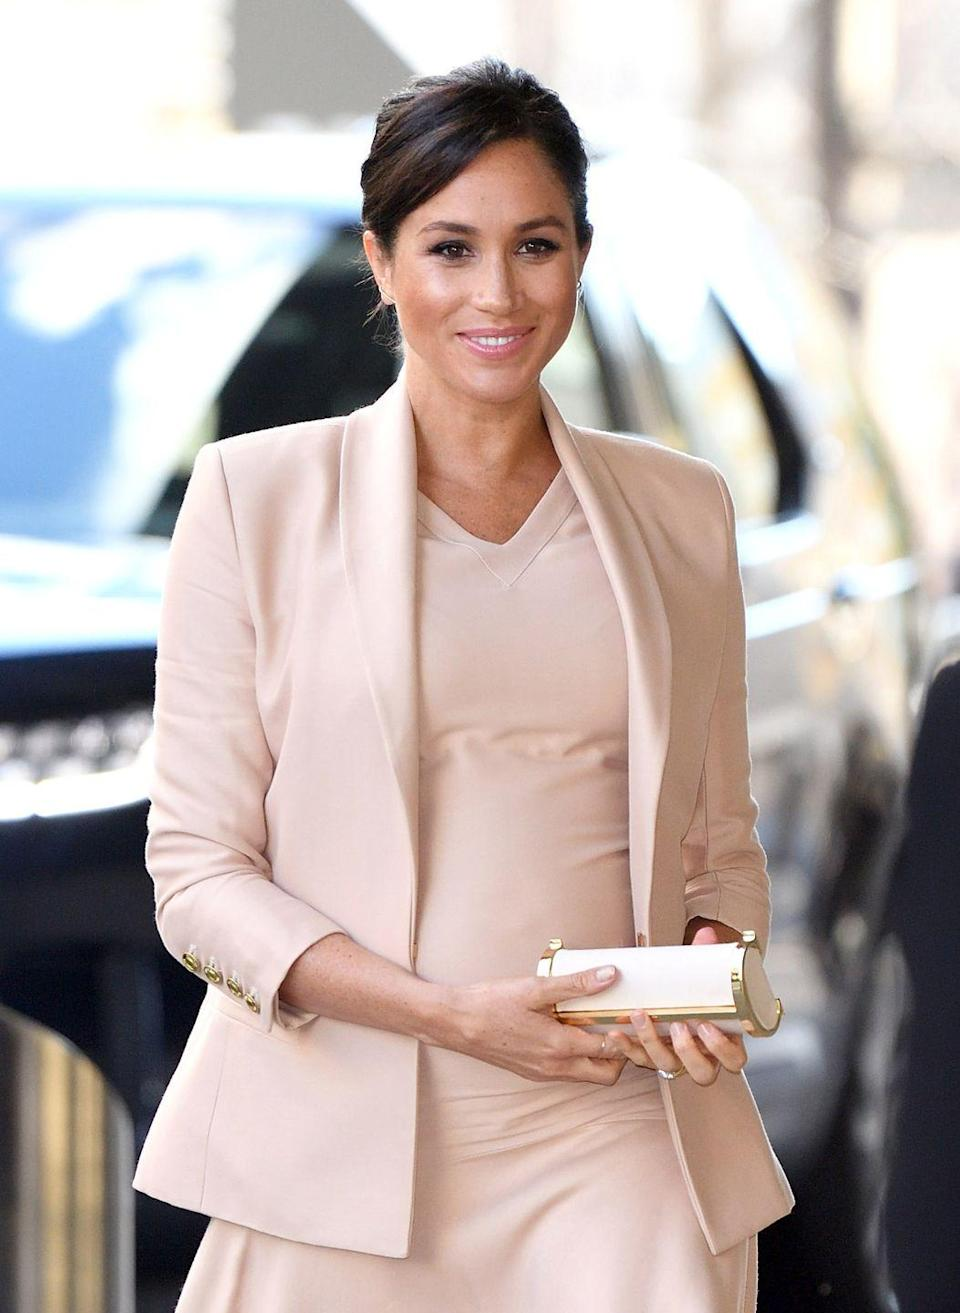 <p>While some of the royals prefer saturated pink, Meghan favors nearly-neutral blush-pink, like the sleek dress and jacket she wore to visit The National Theatre in London in January 2019. </p>